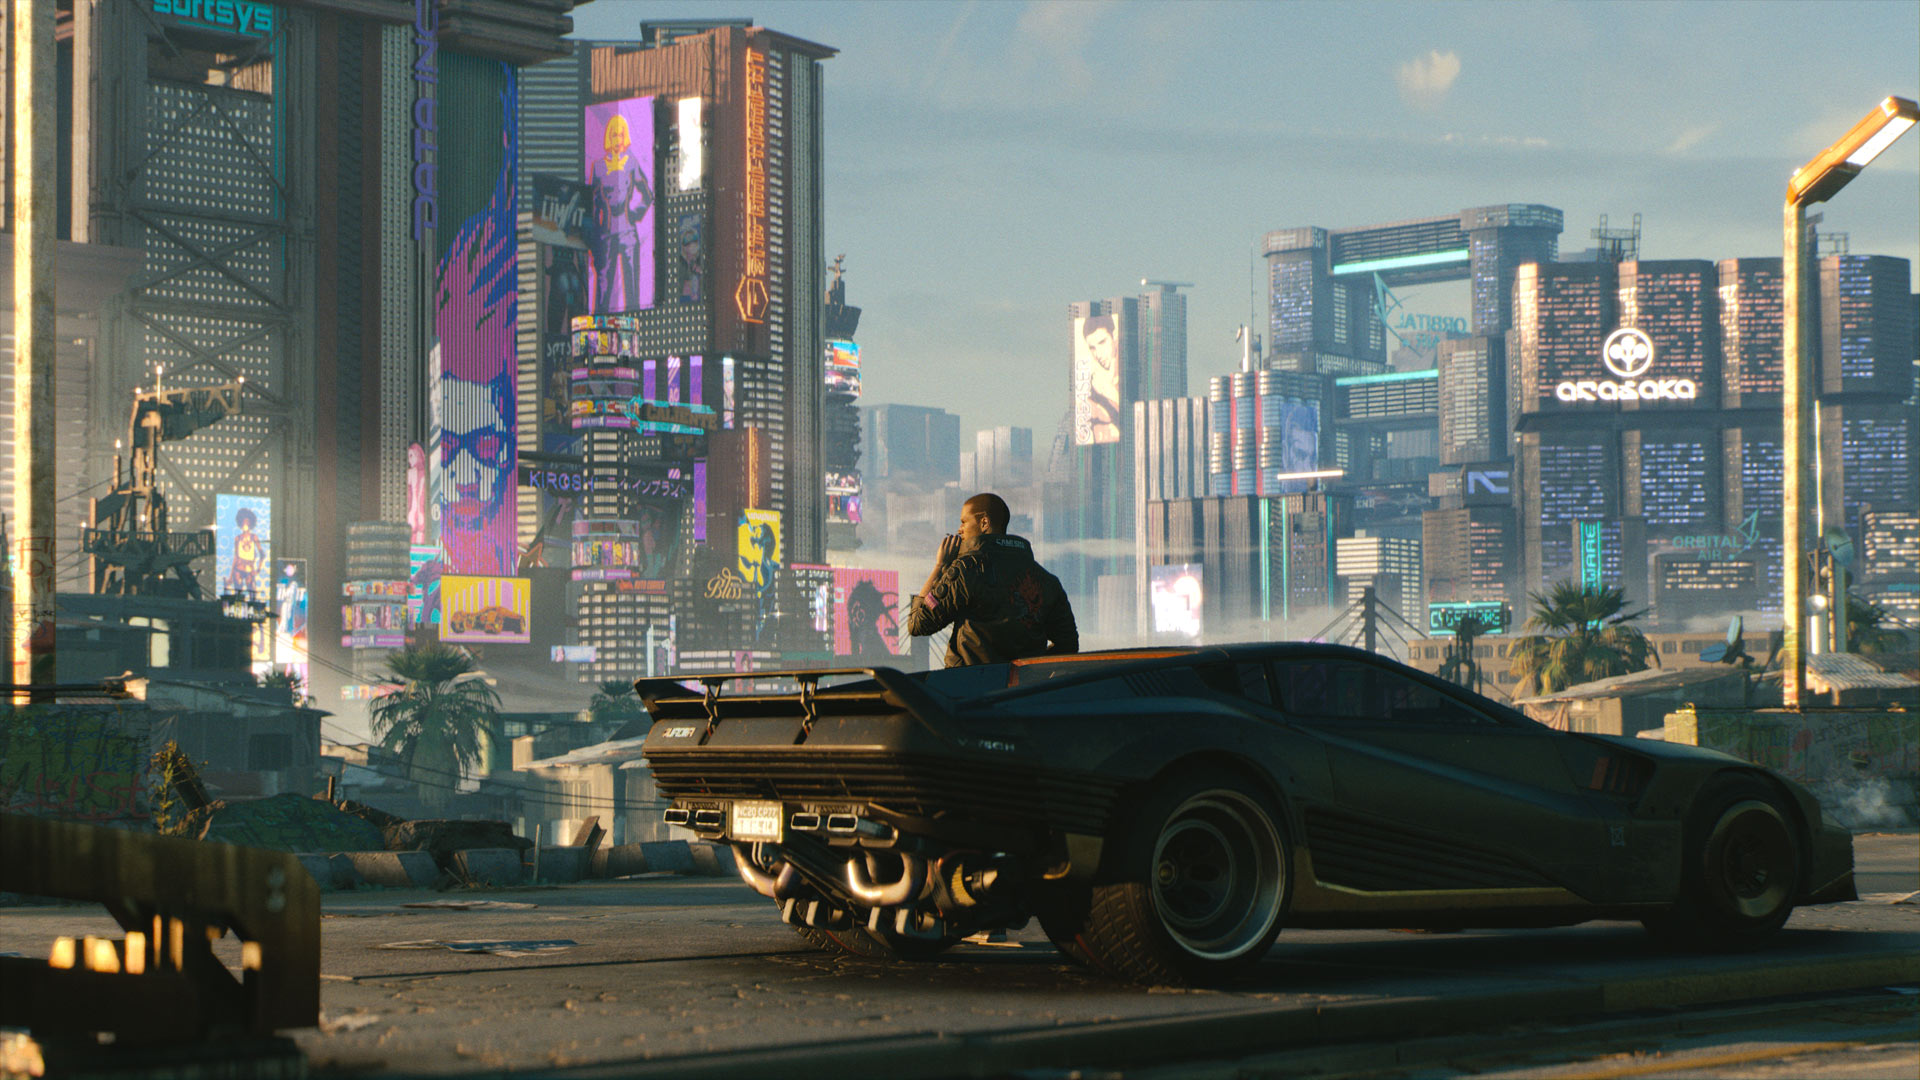 Stigao Cyberpunk 2077 cinematic